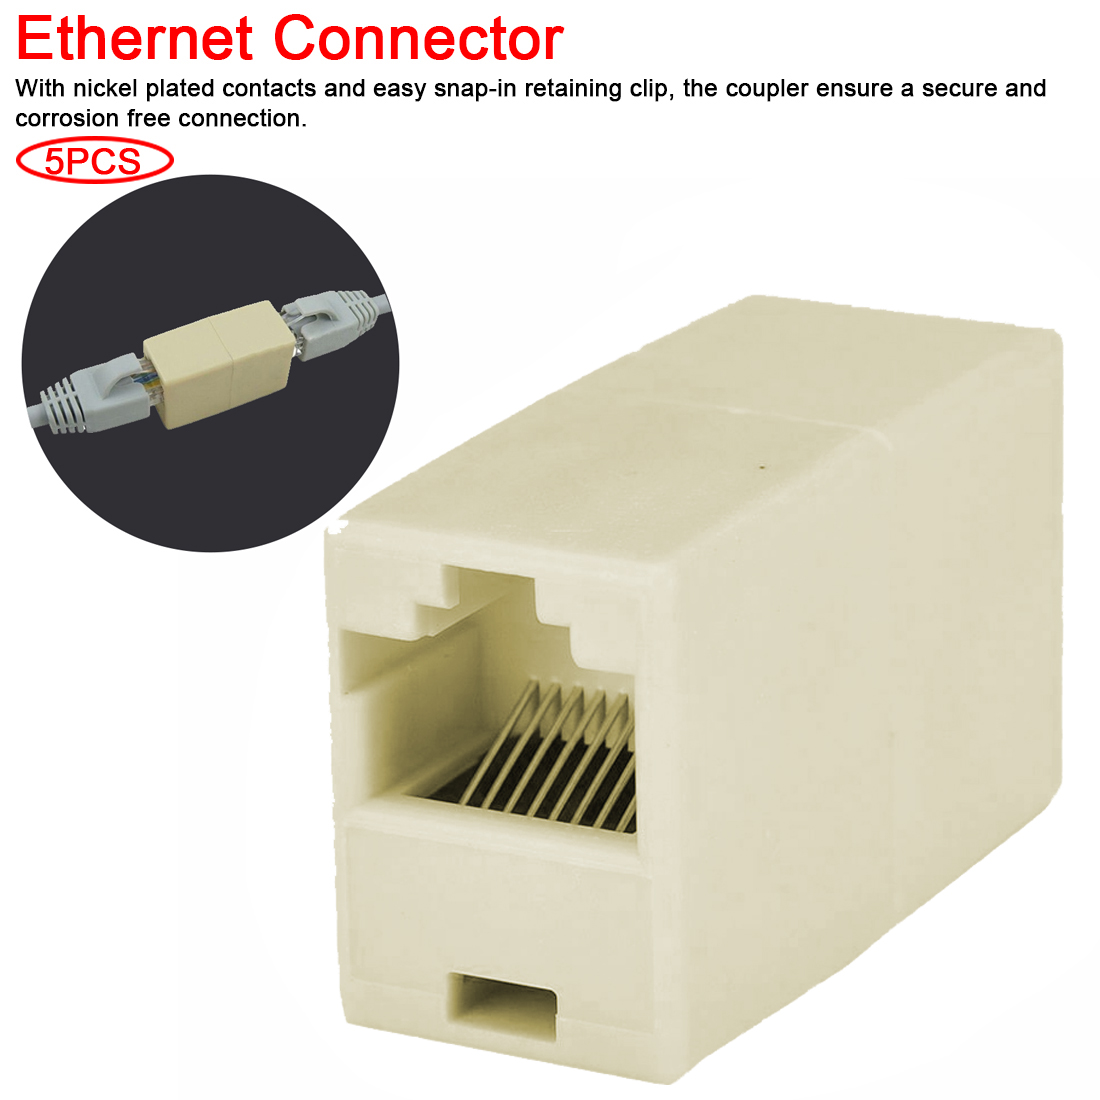 6 Pcs RJ45 Cat5E Network Ethernet Straight Inline Coupler Cable Joiner Connector